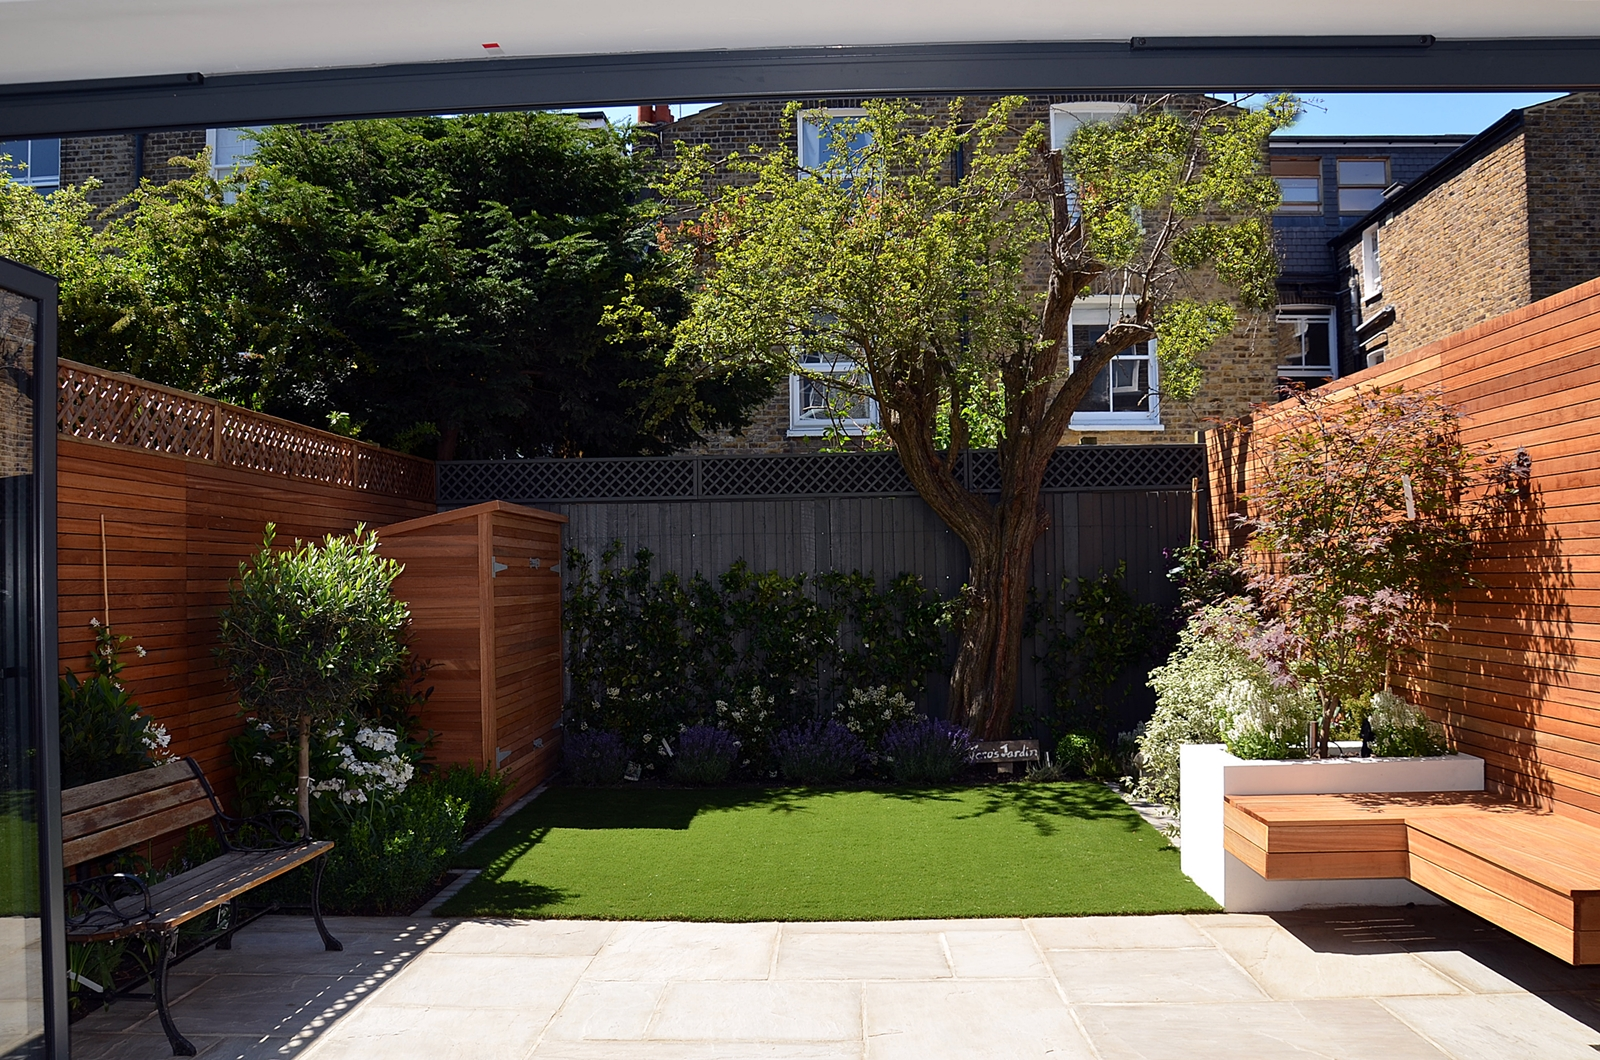 London garden blog page 3 of 40 london garden blog for Horizontal garden screening